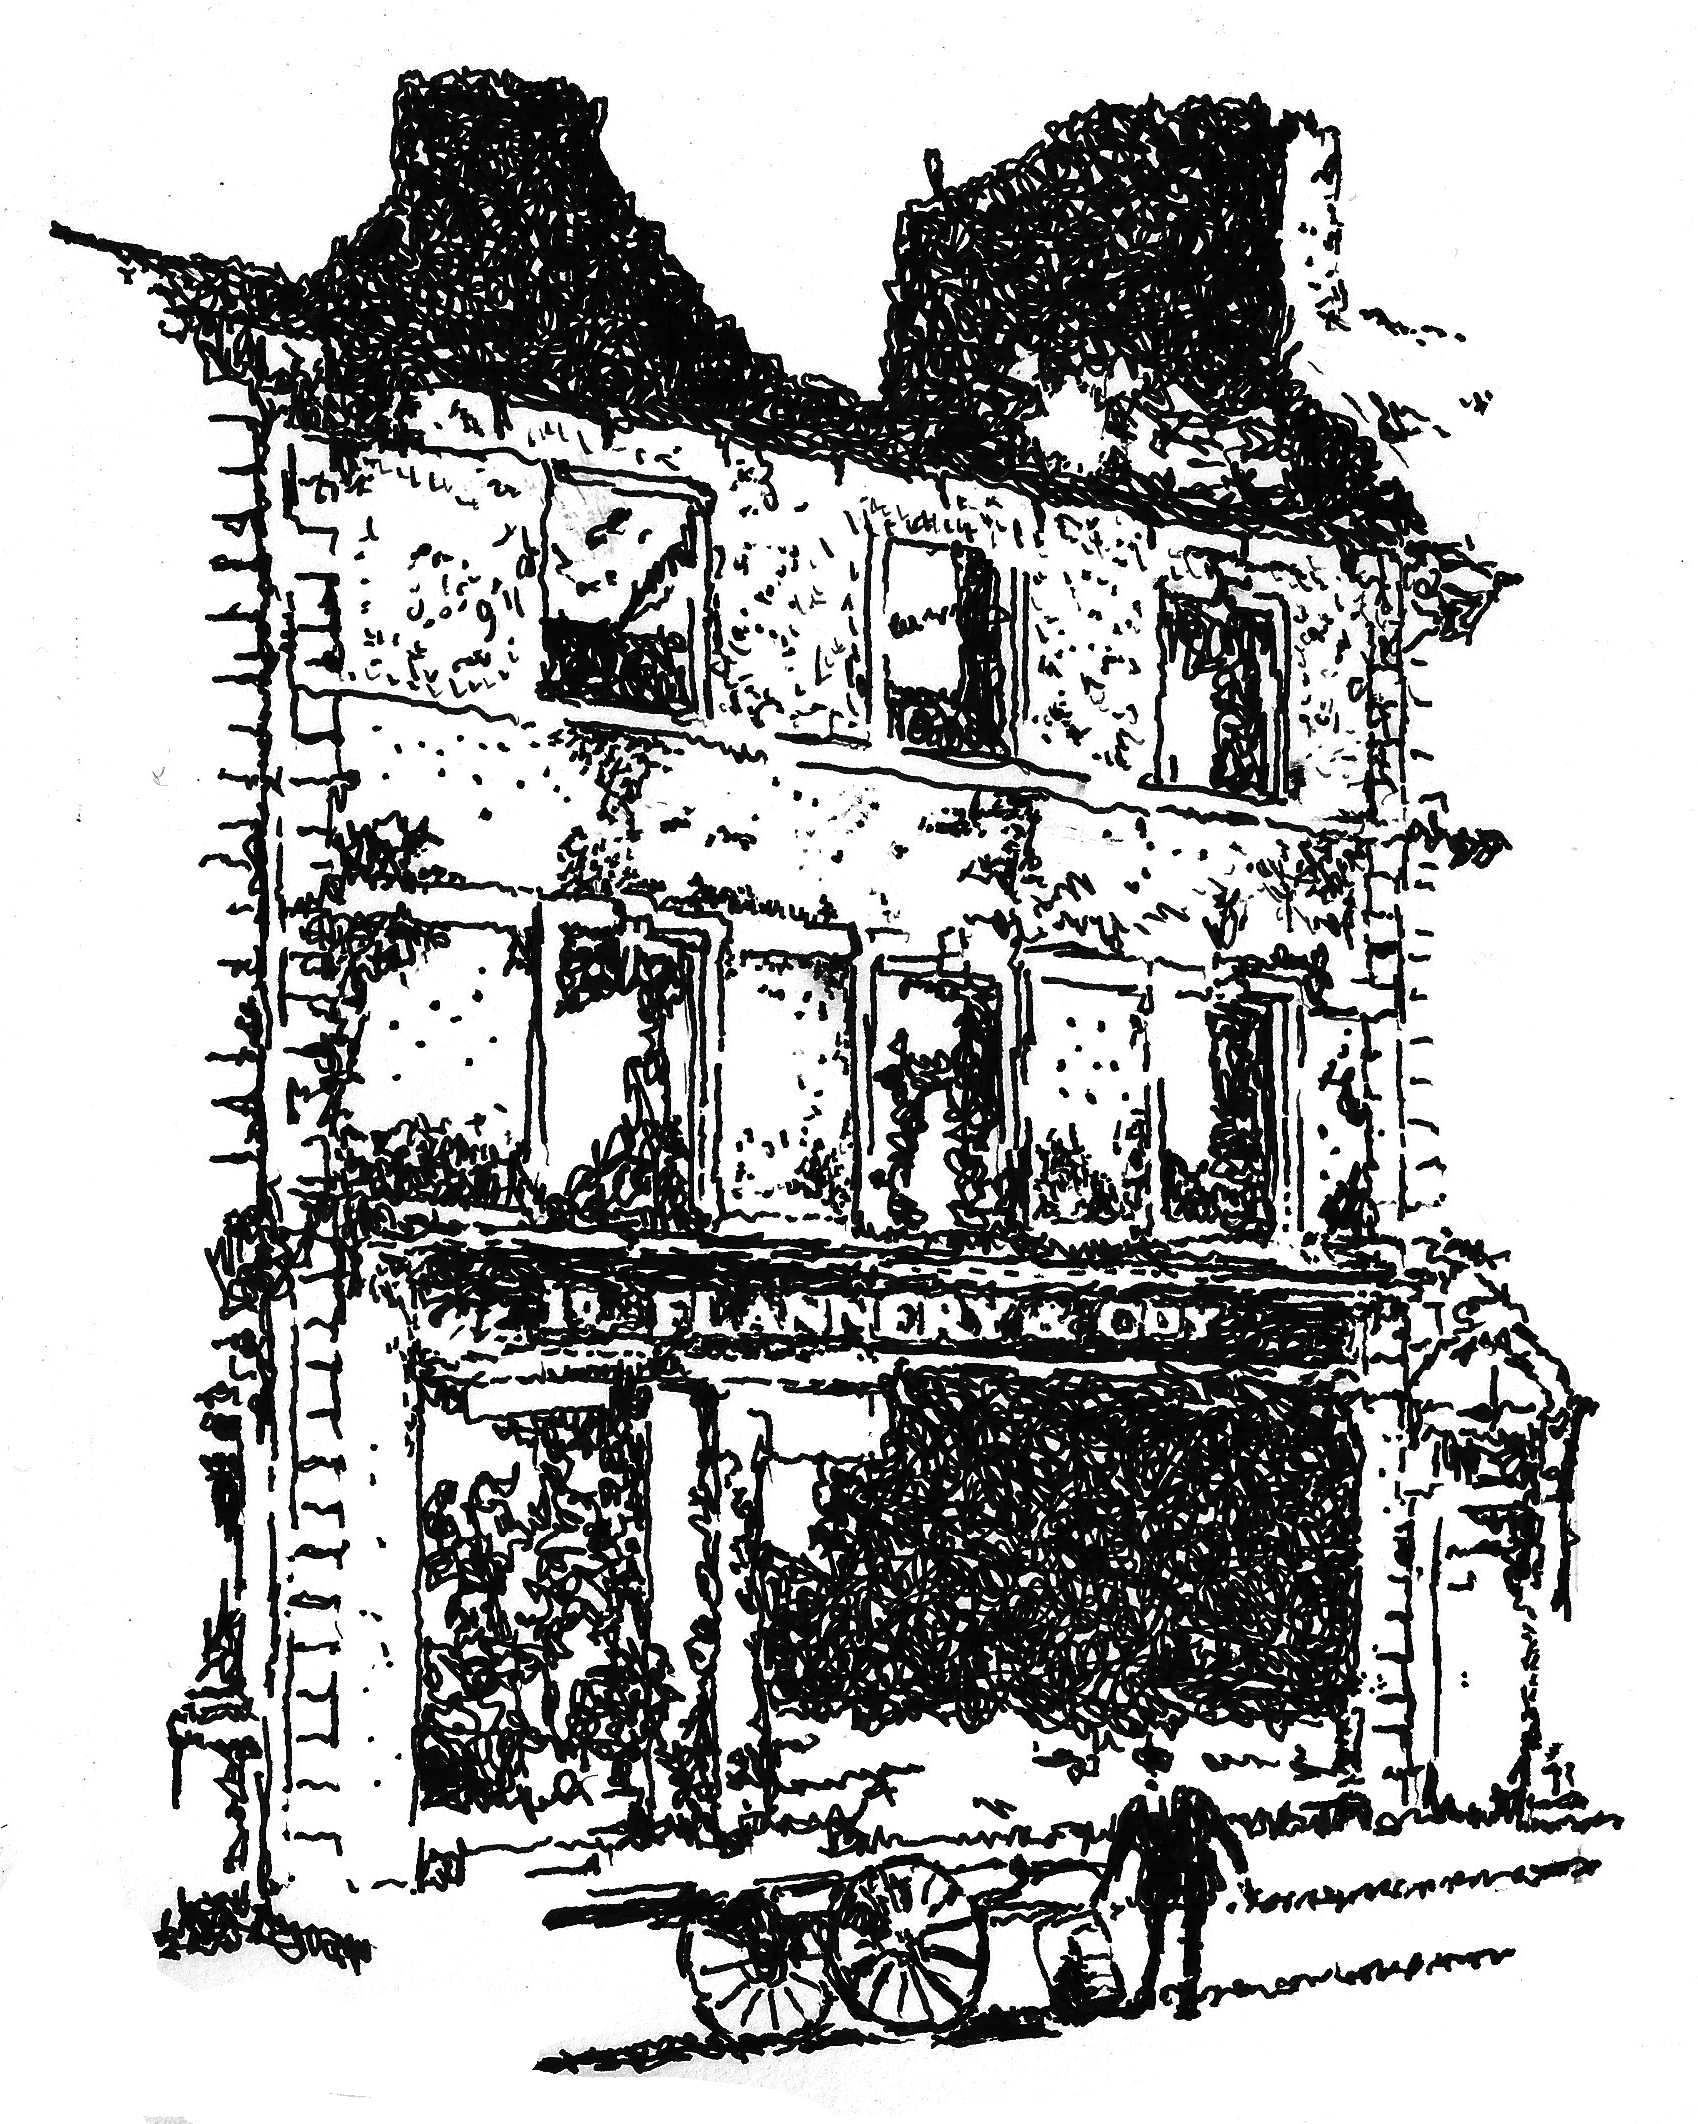 Flannery's General Store, Nenagh, was destroyed during the burning of Nenagh in November 1920.